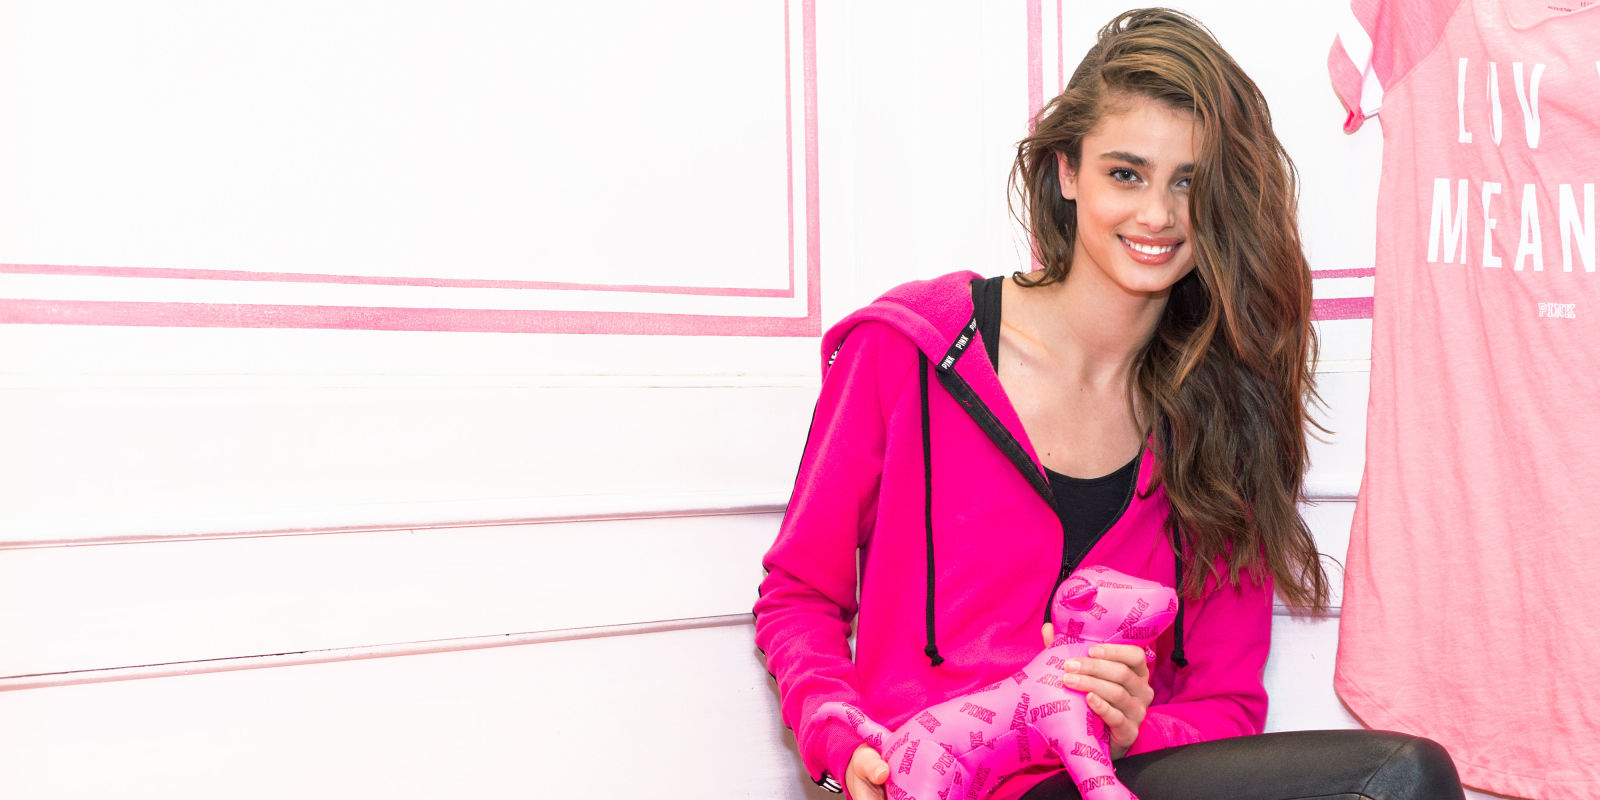 Harry Styles Fall Wallpaper Victoria S Secret Model Taylor Hill Shares Her Foolproof